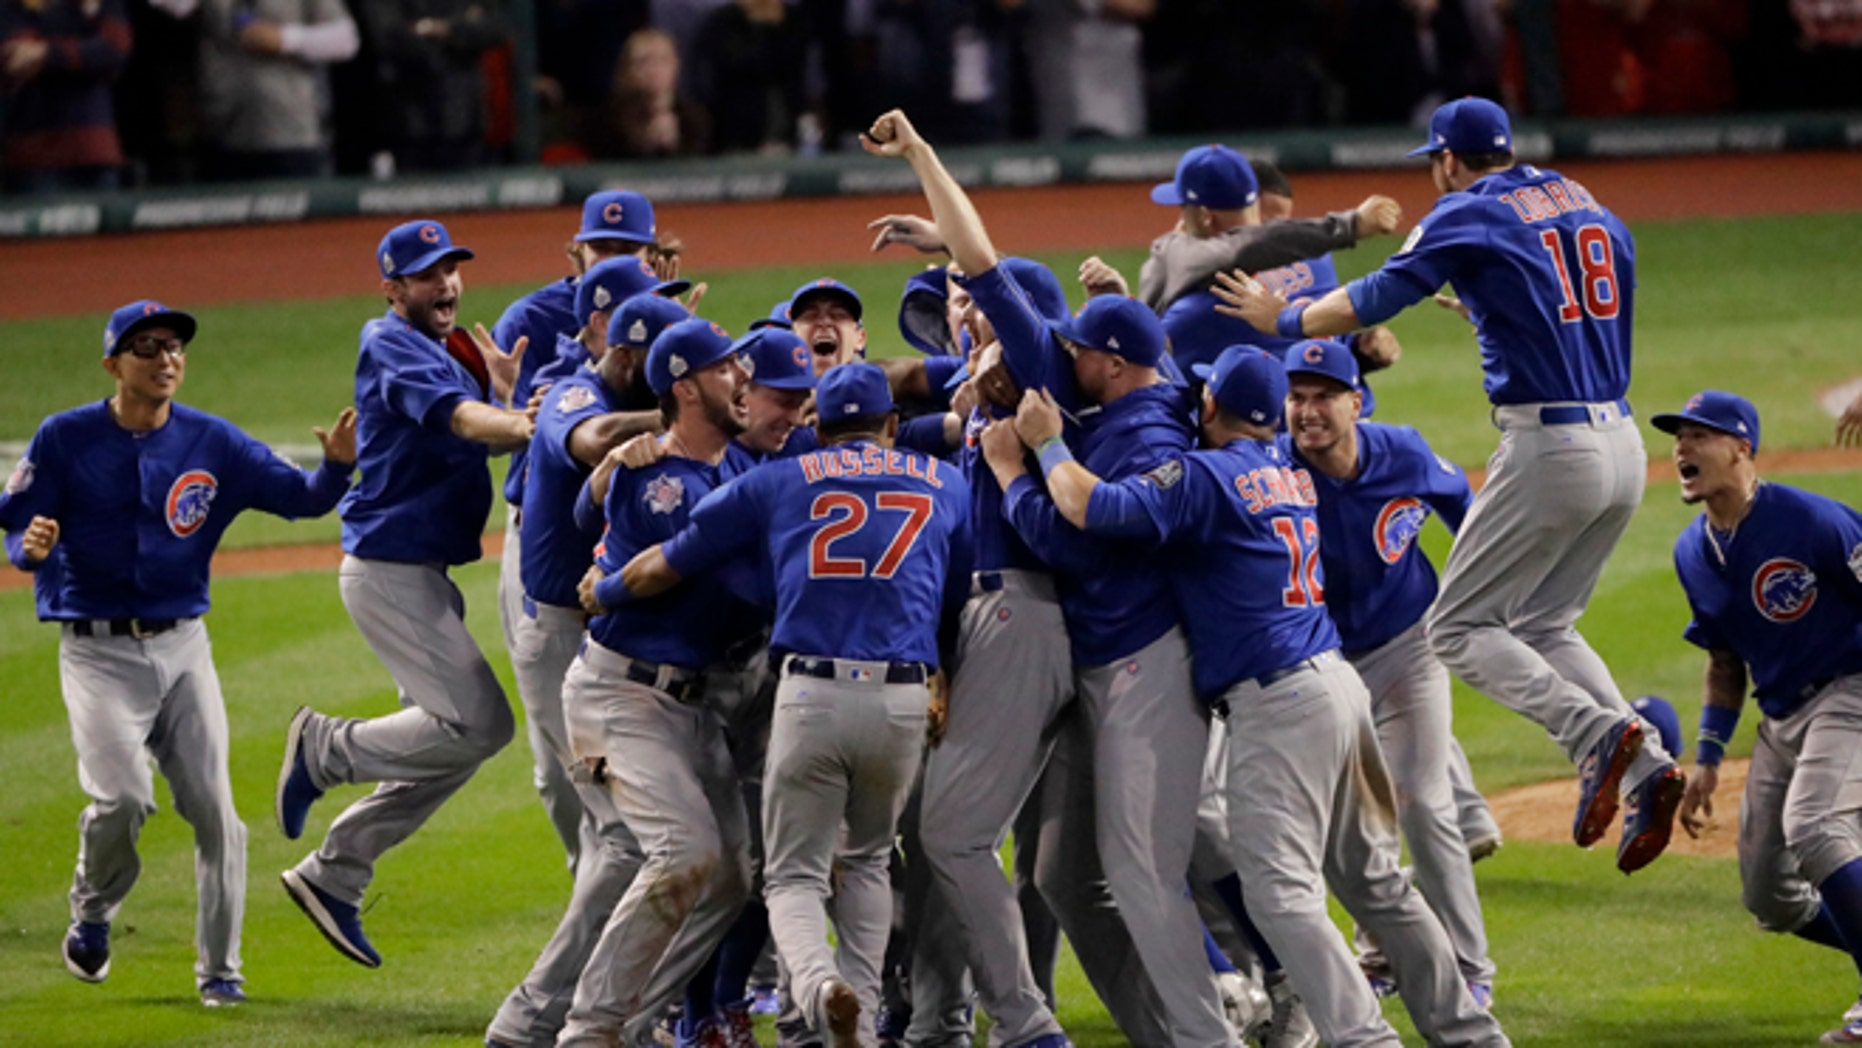 Chicago Cubs celebrate after Game 7 of the Major League Baseball World Series against the Cleveland Indians Thursday, Nov. 3, 2016, in Cleveland. The Cubs won 8-7 in 10 innings to win the series 4-3. (AP Photo/Charlie Riedel)